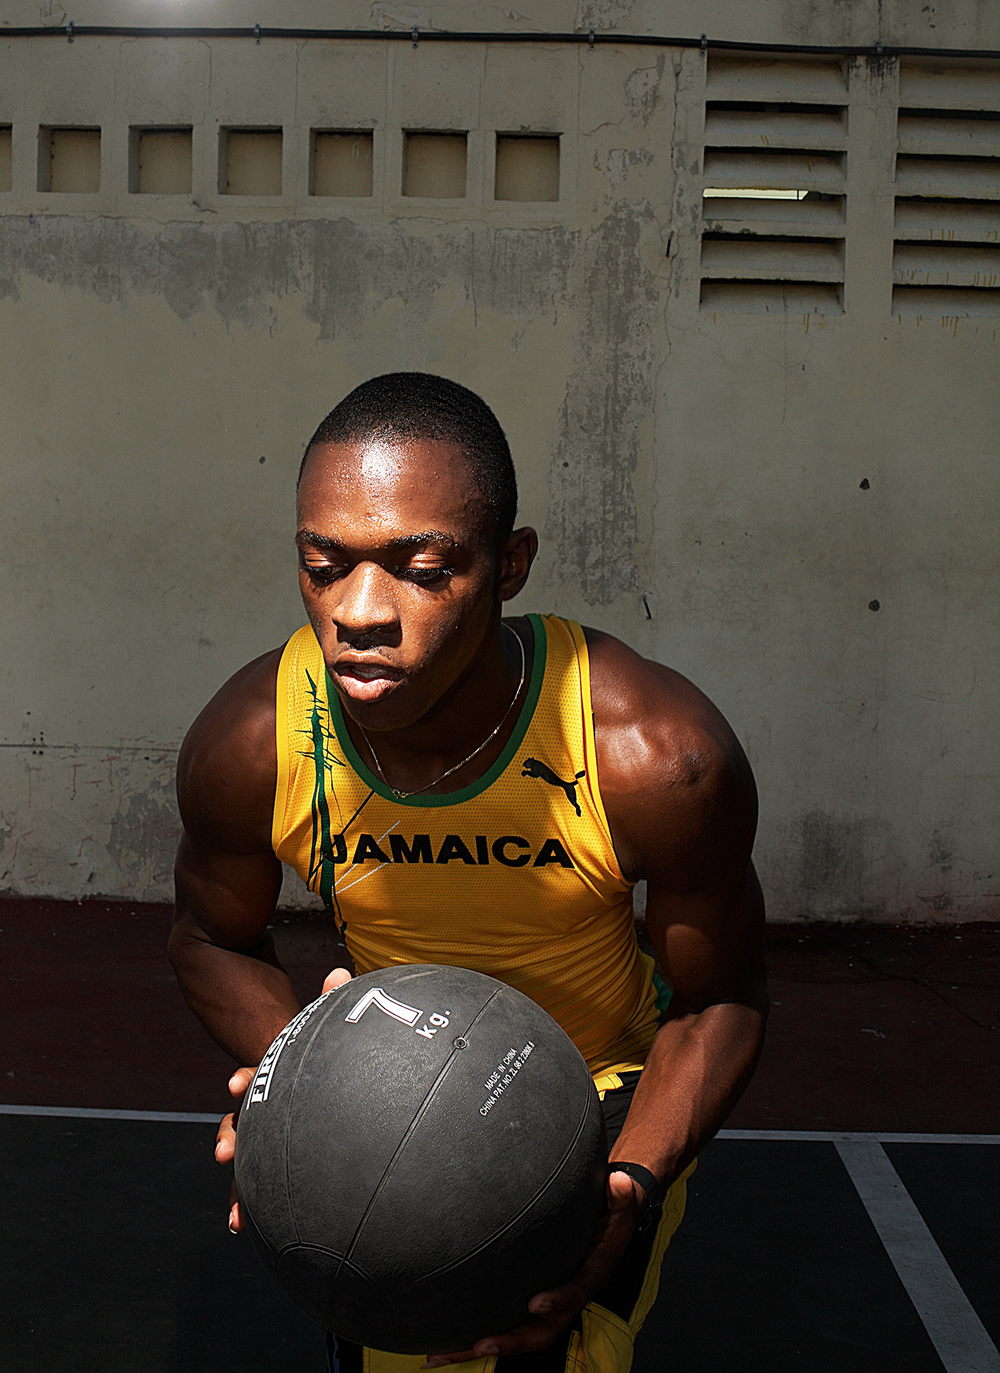 Asafa Powell training photographed by Chris Floyd represented by Flock